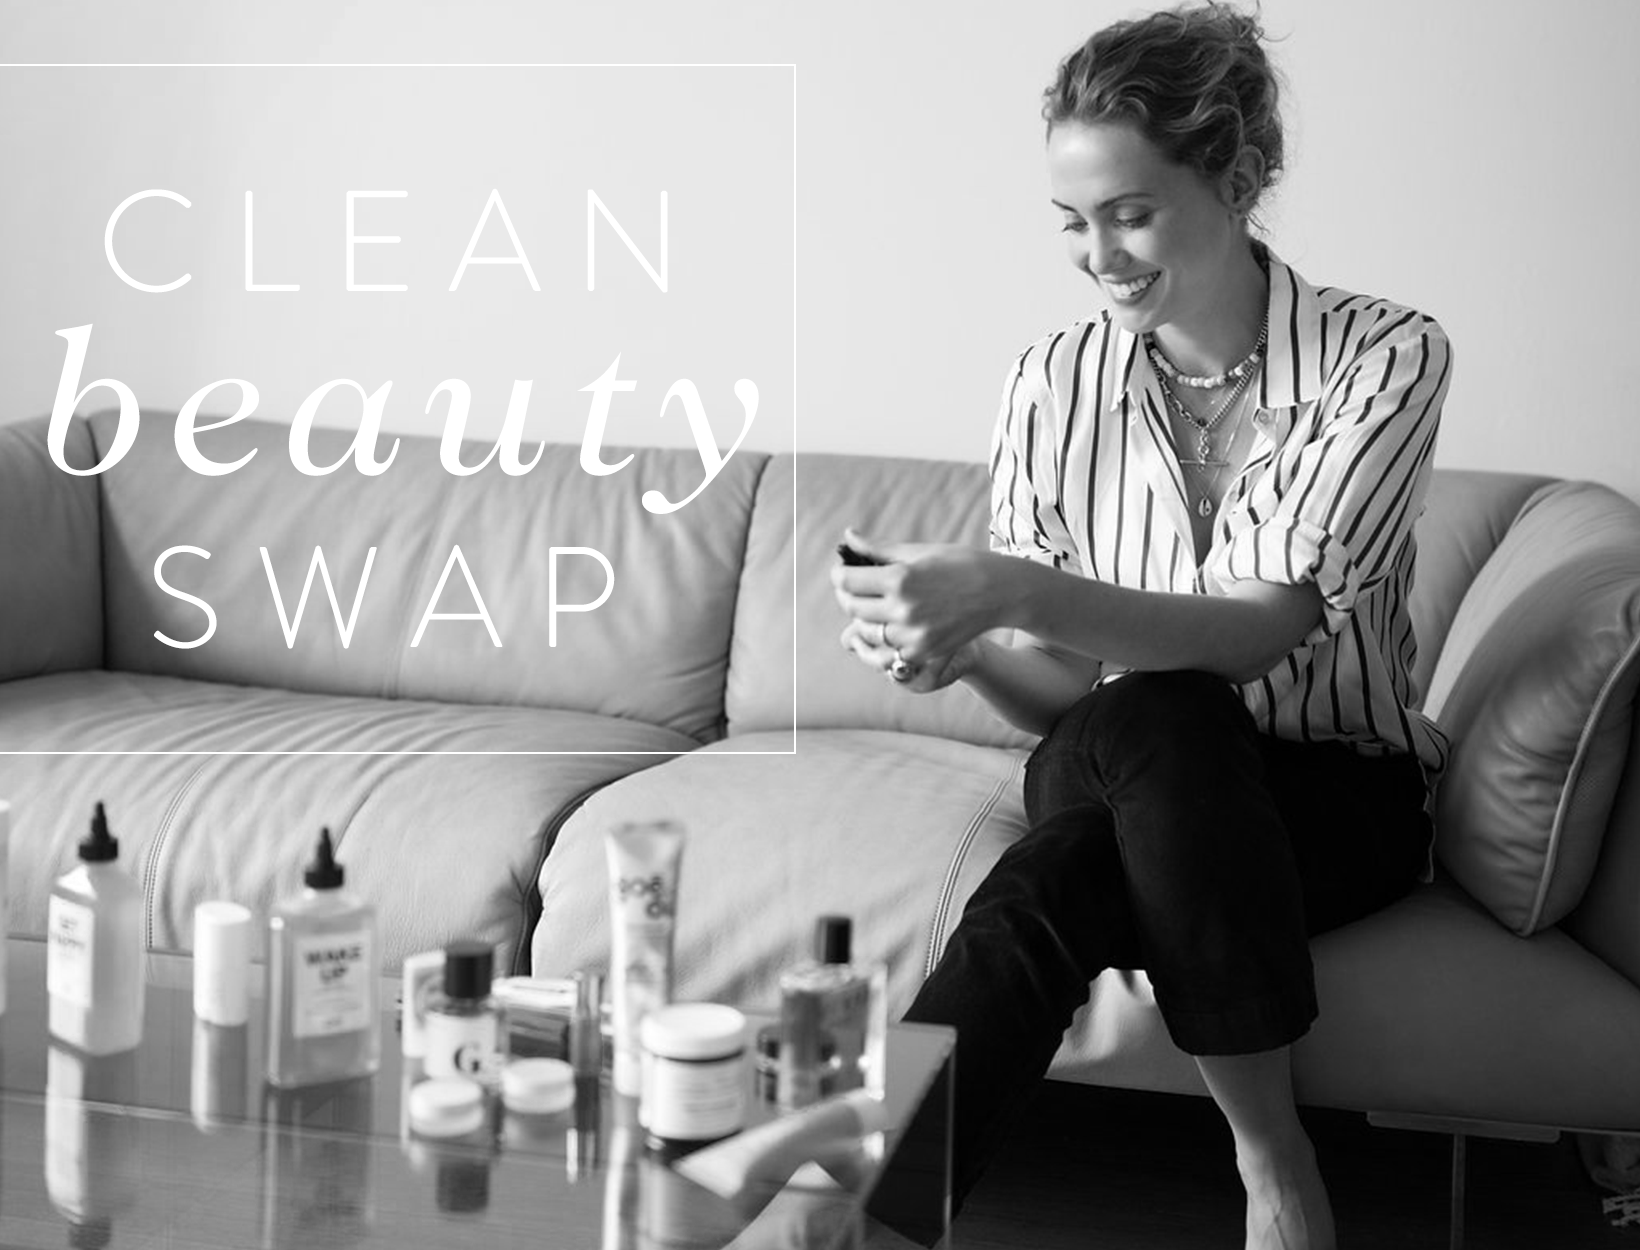 Clean Beauty Swap: The Coveteur's Laurel Pantin Does a Medicine-Cabinet Makeover with Jean Godfrey-June